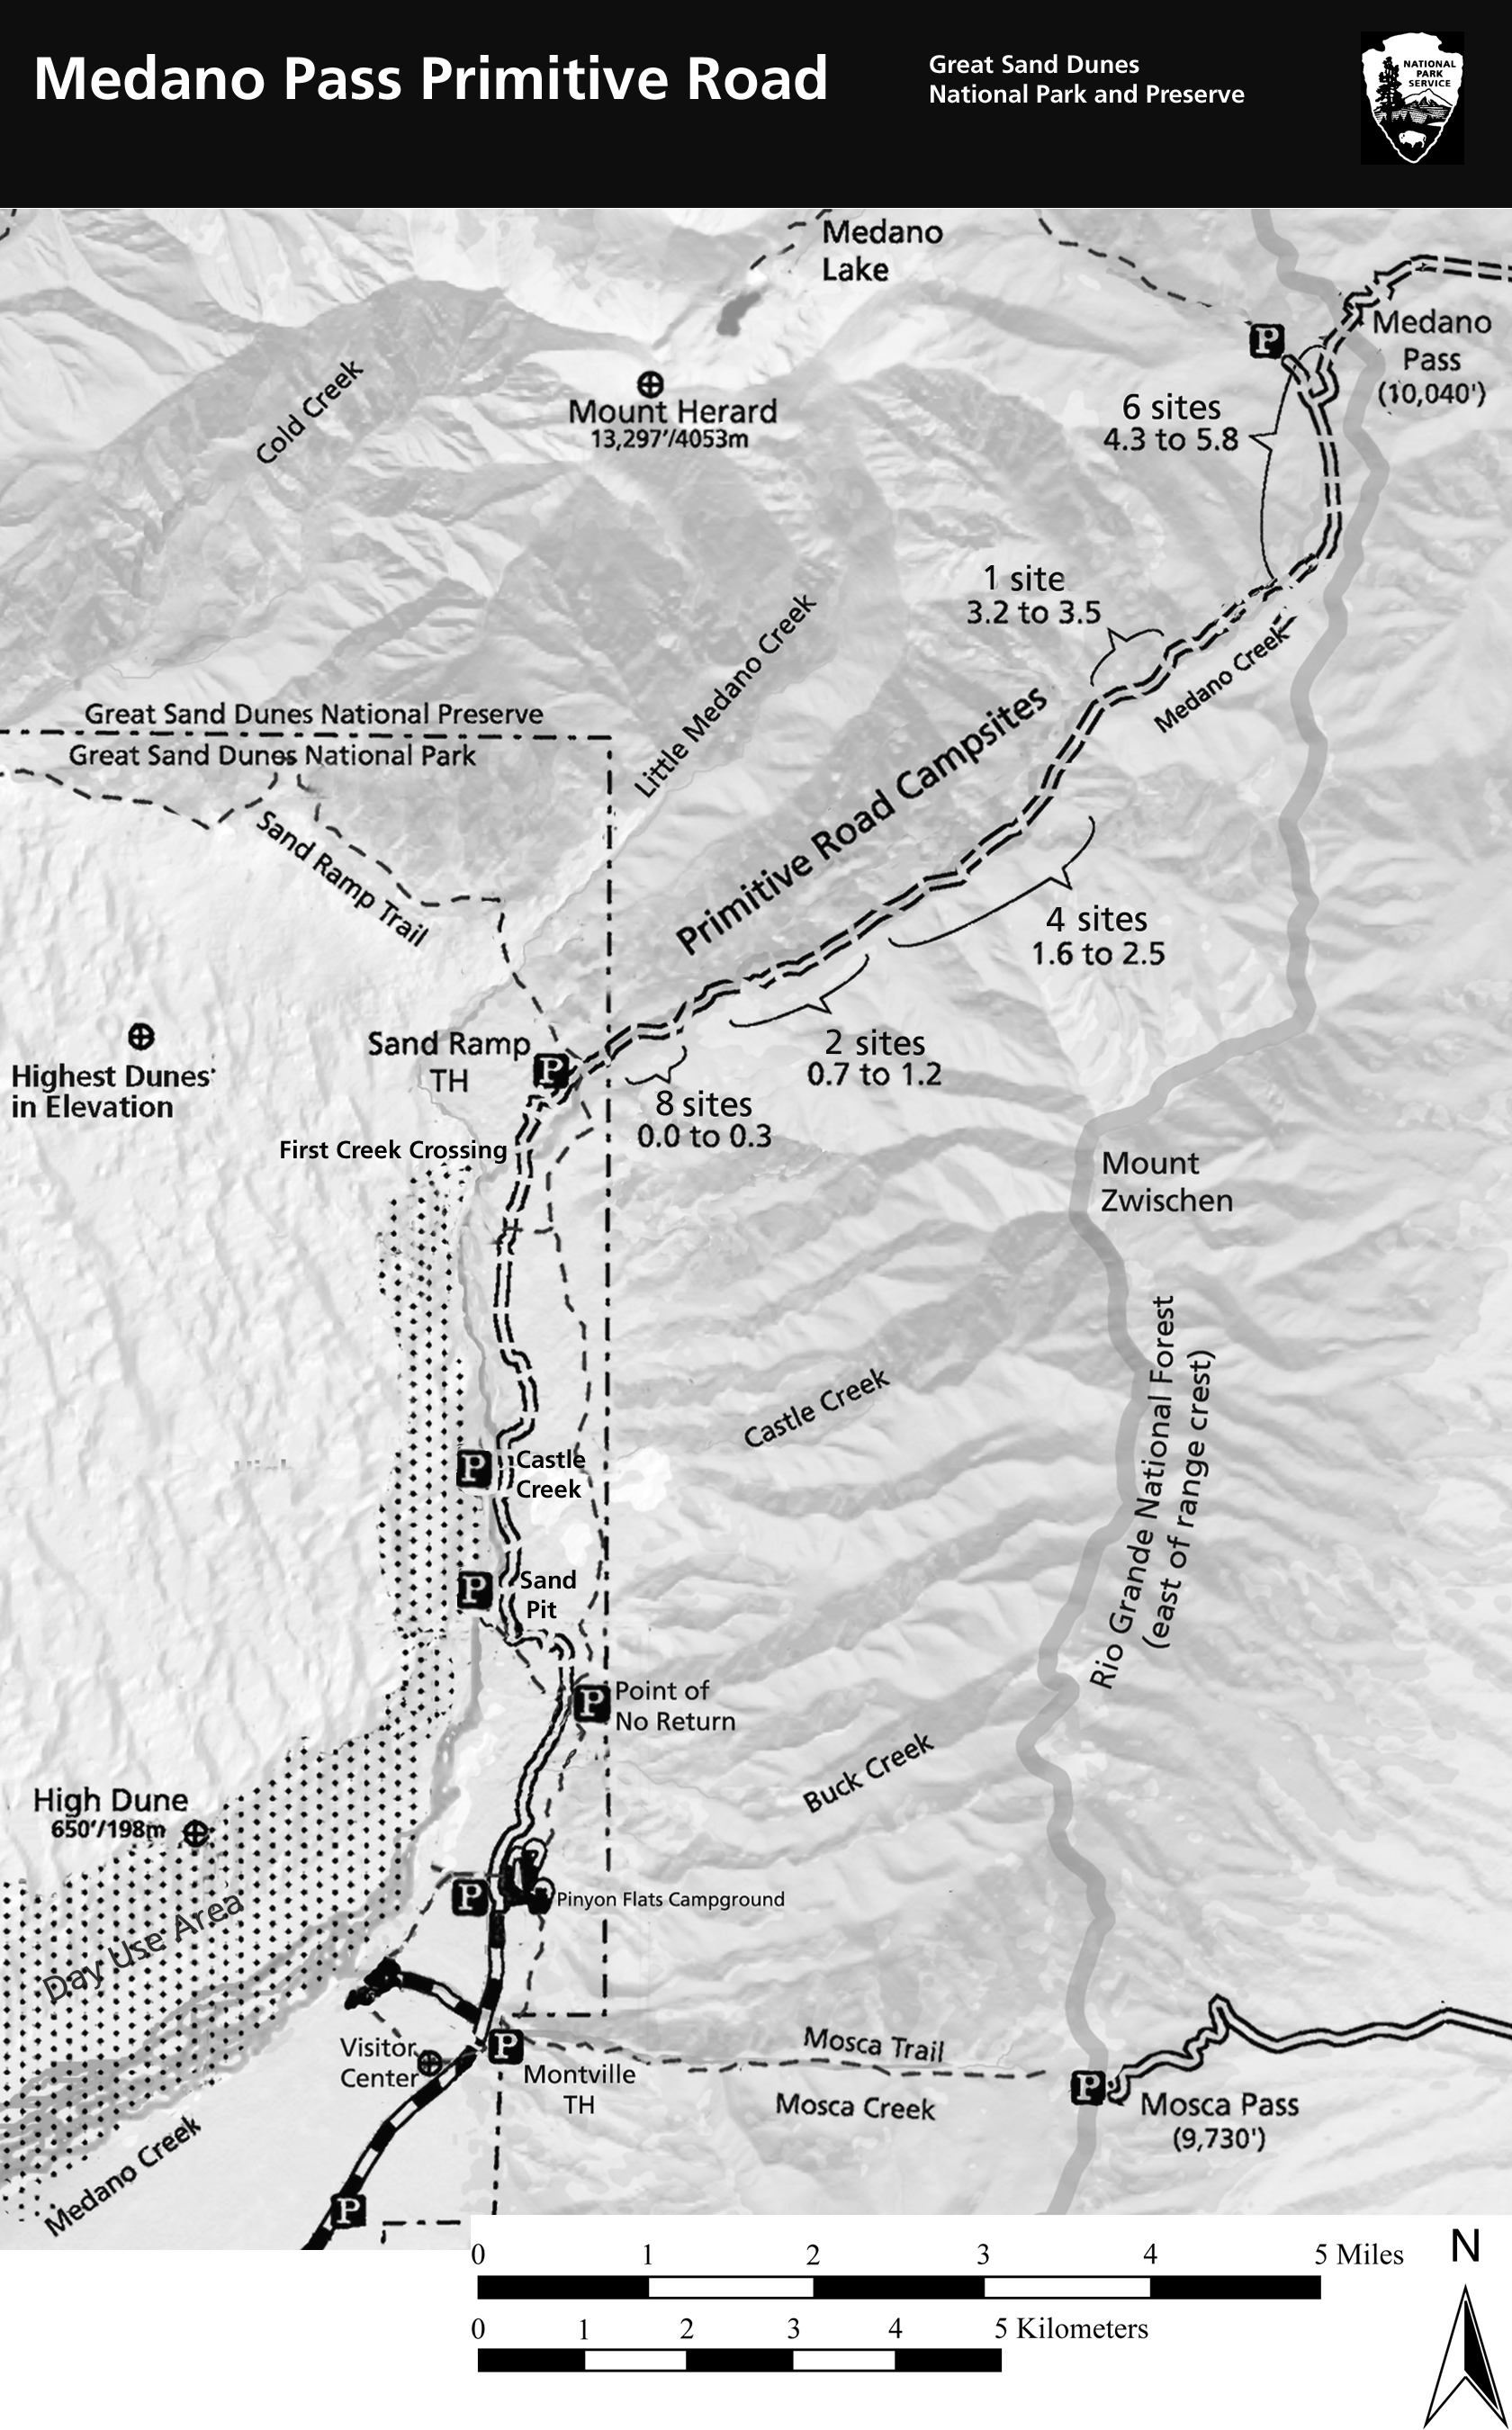 Mosca Colorado Map.Medano Pass Primitive Road Great Sand Dunes National Park